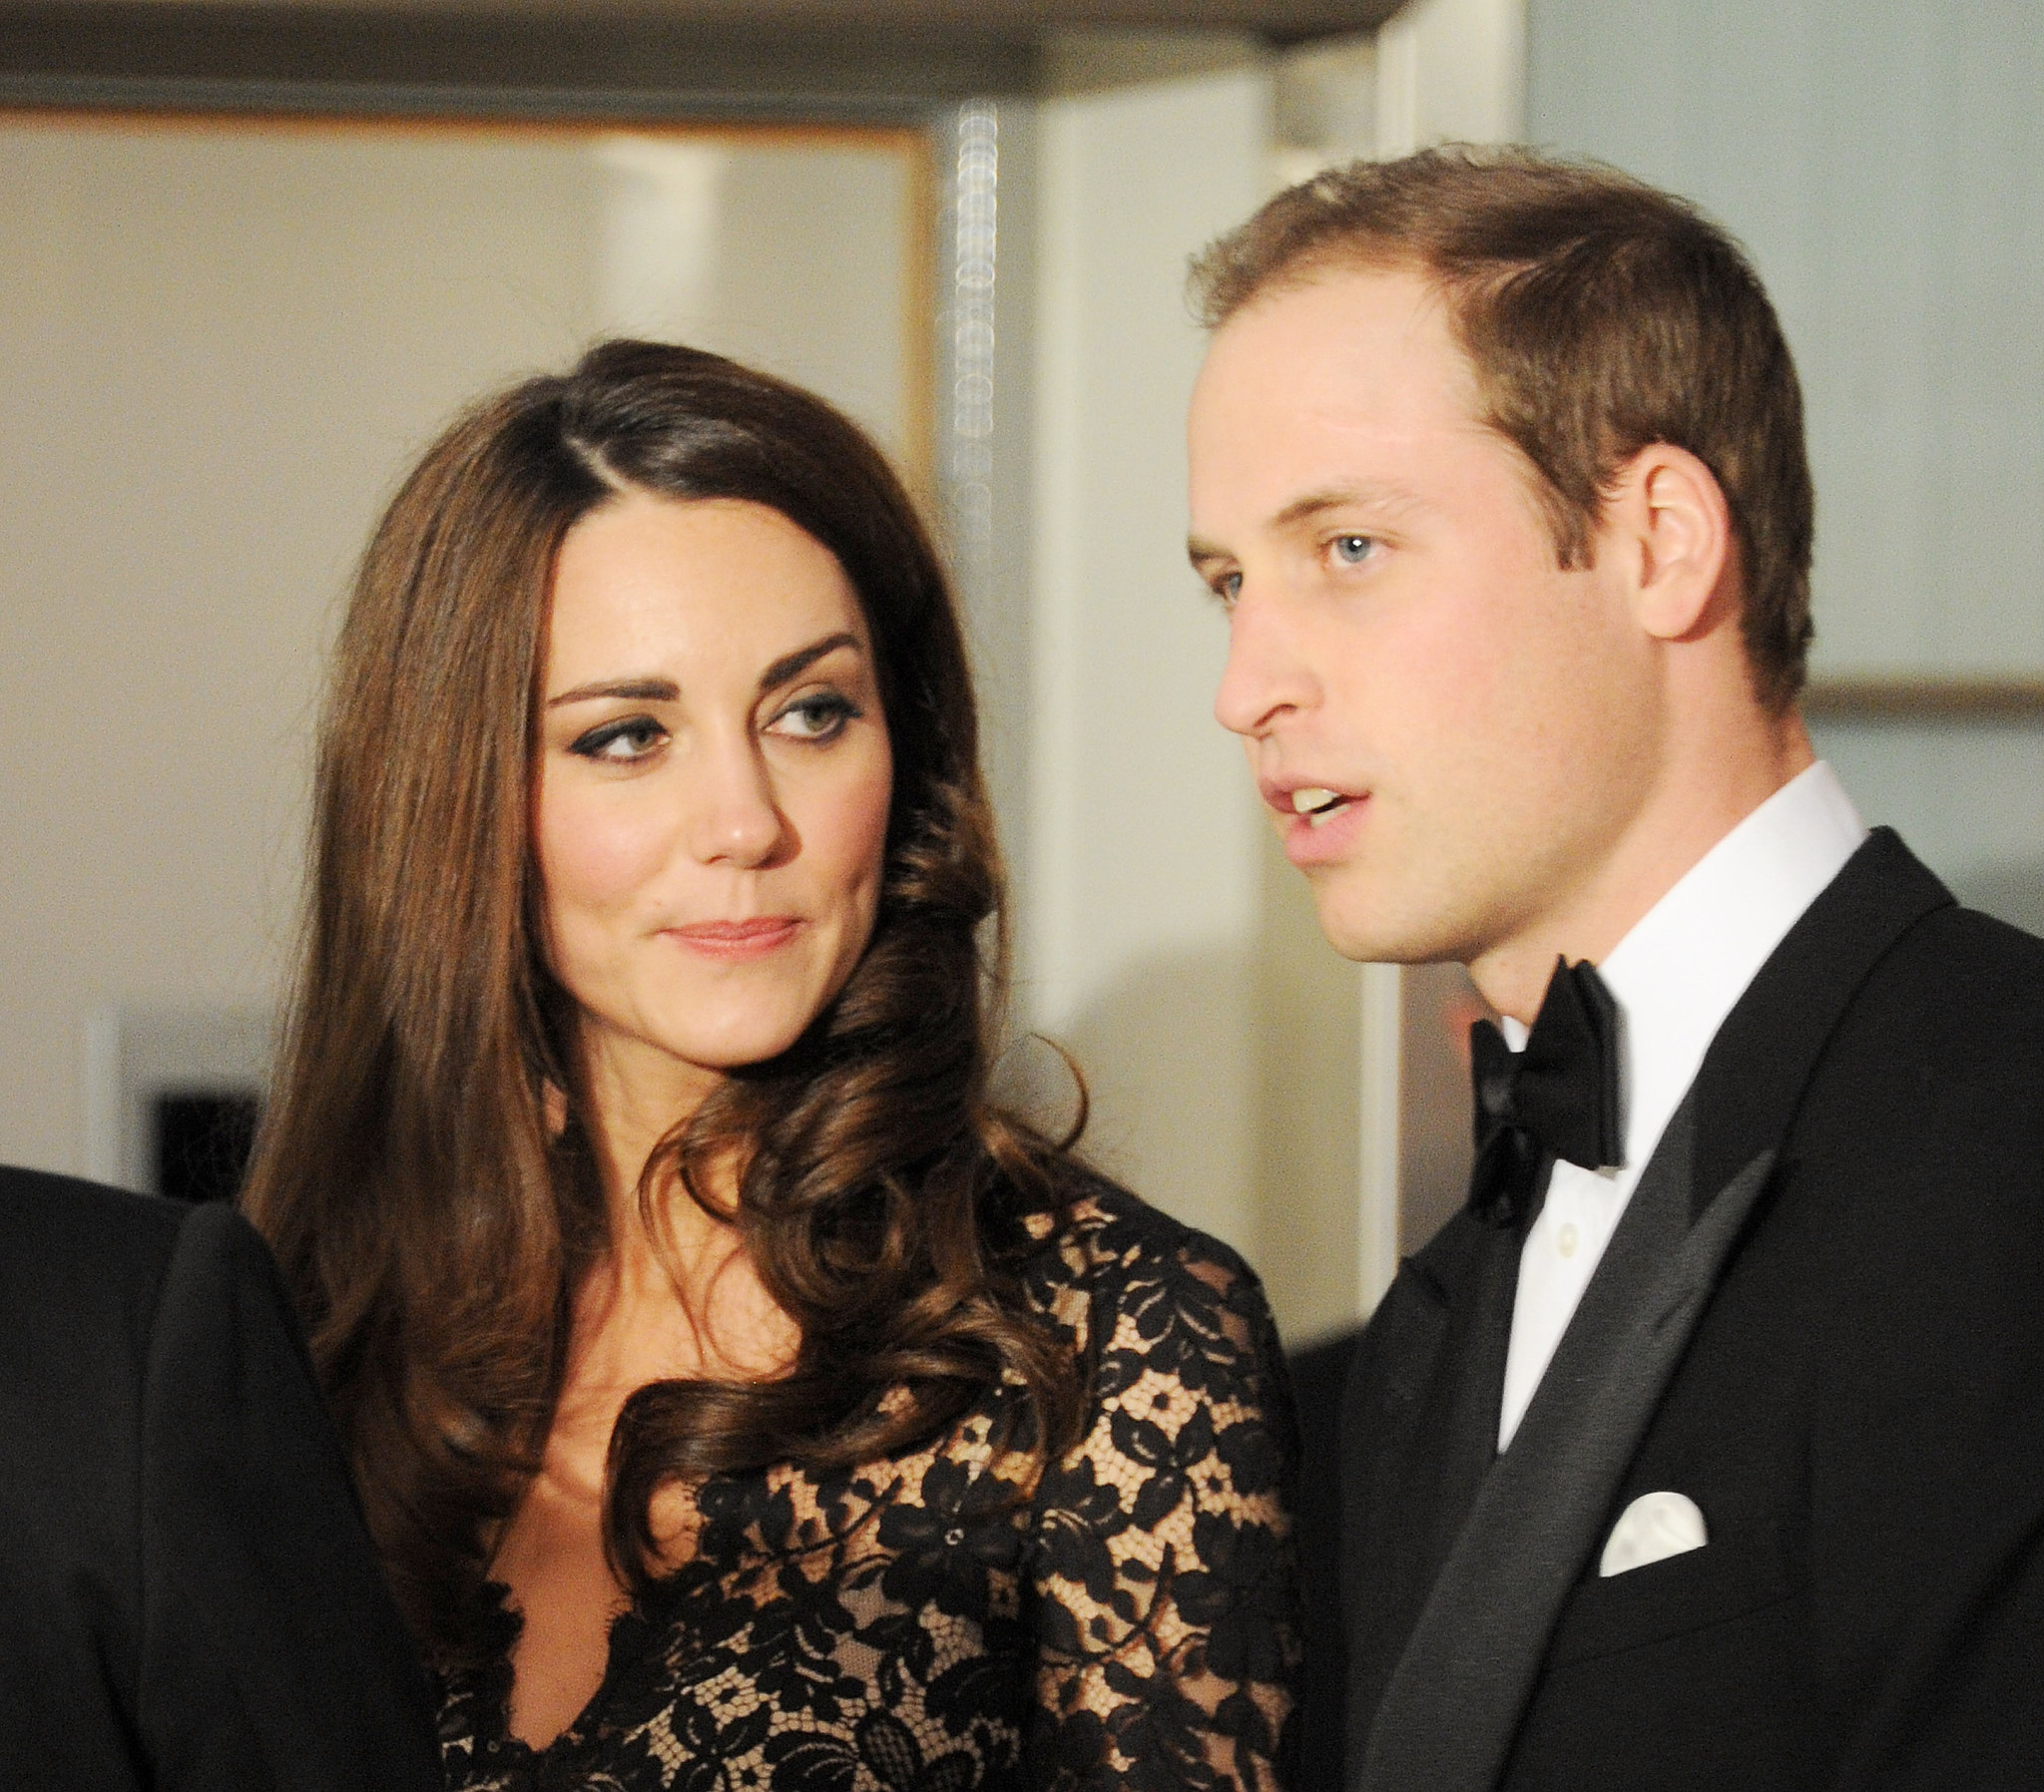 Kate kept her eyes on Will at the London premiere of War Horse in January 2012.